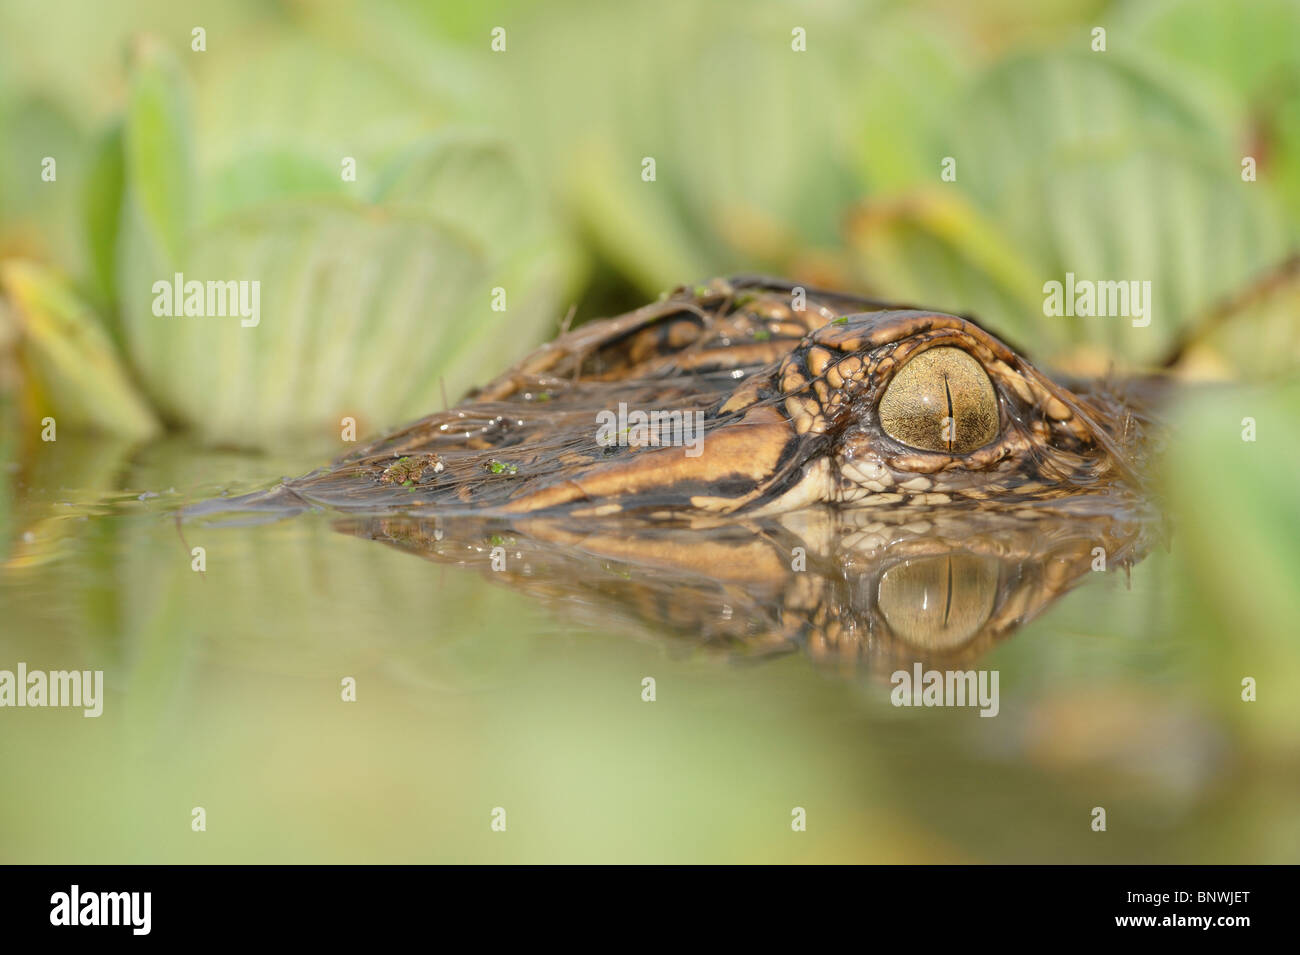 American Alligator (Alligator mississipiensis), adult in water lettuce (Pistia stratiotes), Fennessey Ranch, Refugio, - Stock Image